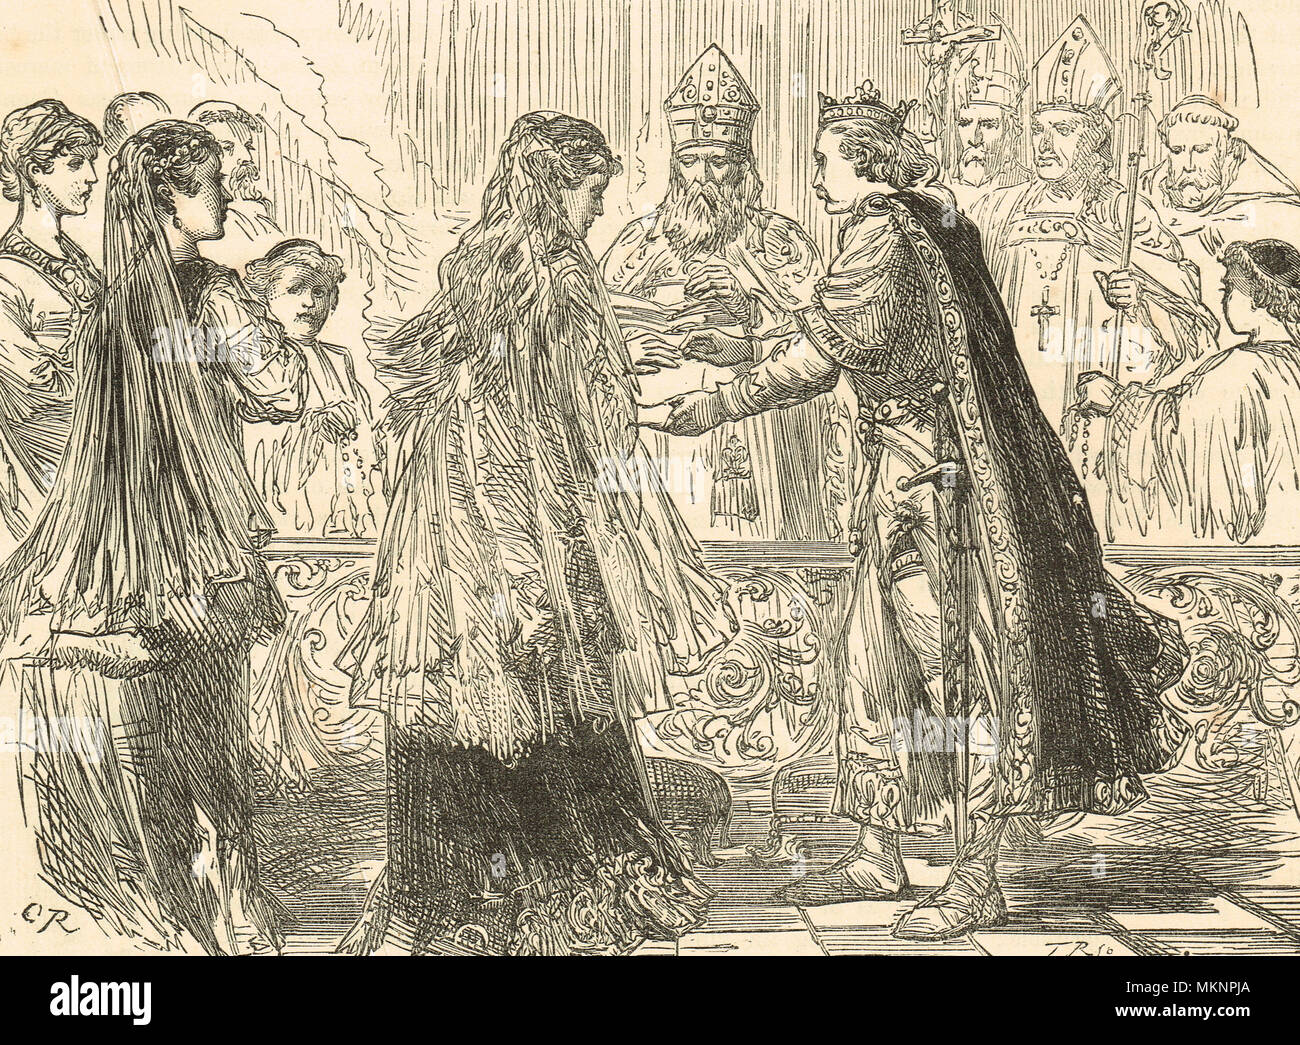 The marriage of King Henry I of England and Matilda of Scotland, 1100 - Stock Image